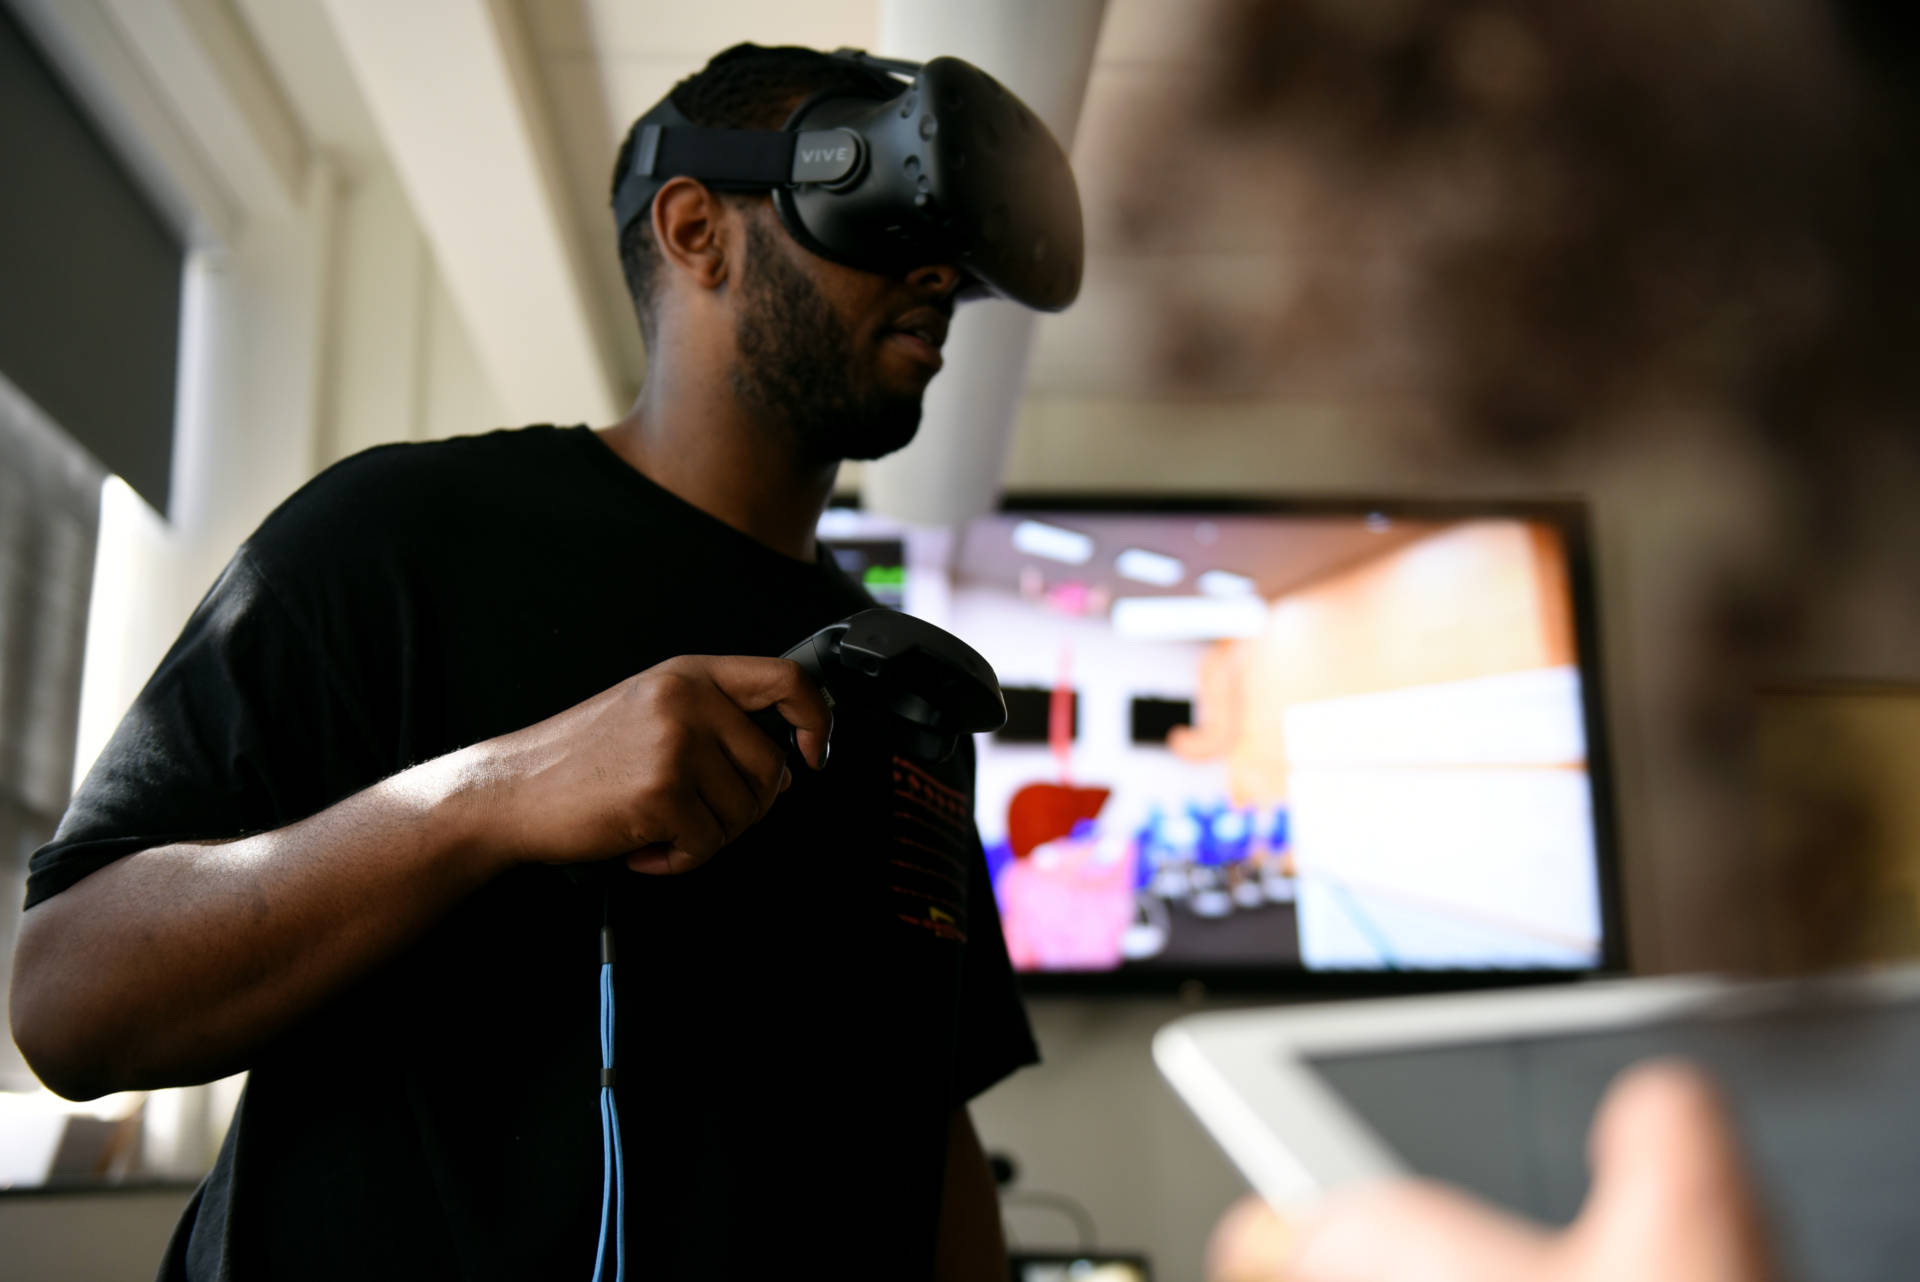 Eric Smith, a medical student at UC San Francisco uses virtual reality to study the digestive system aided by Sheyda Aboii, a fellow student. Lauren Hanussak/KQED